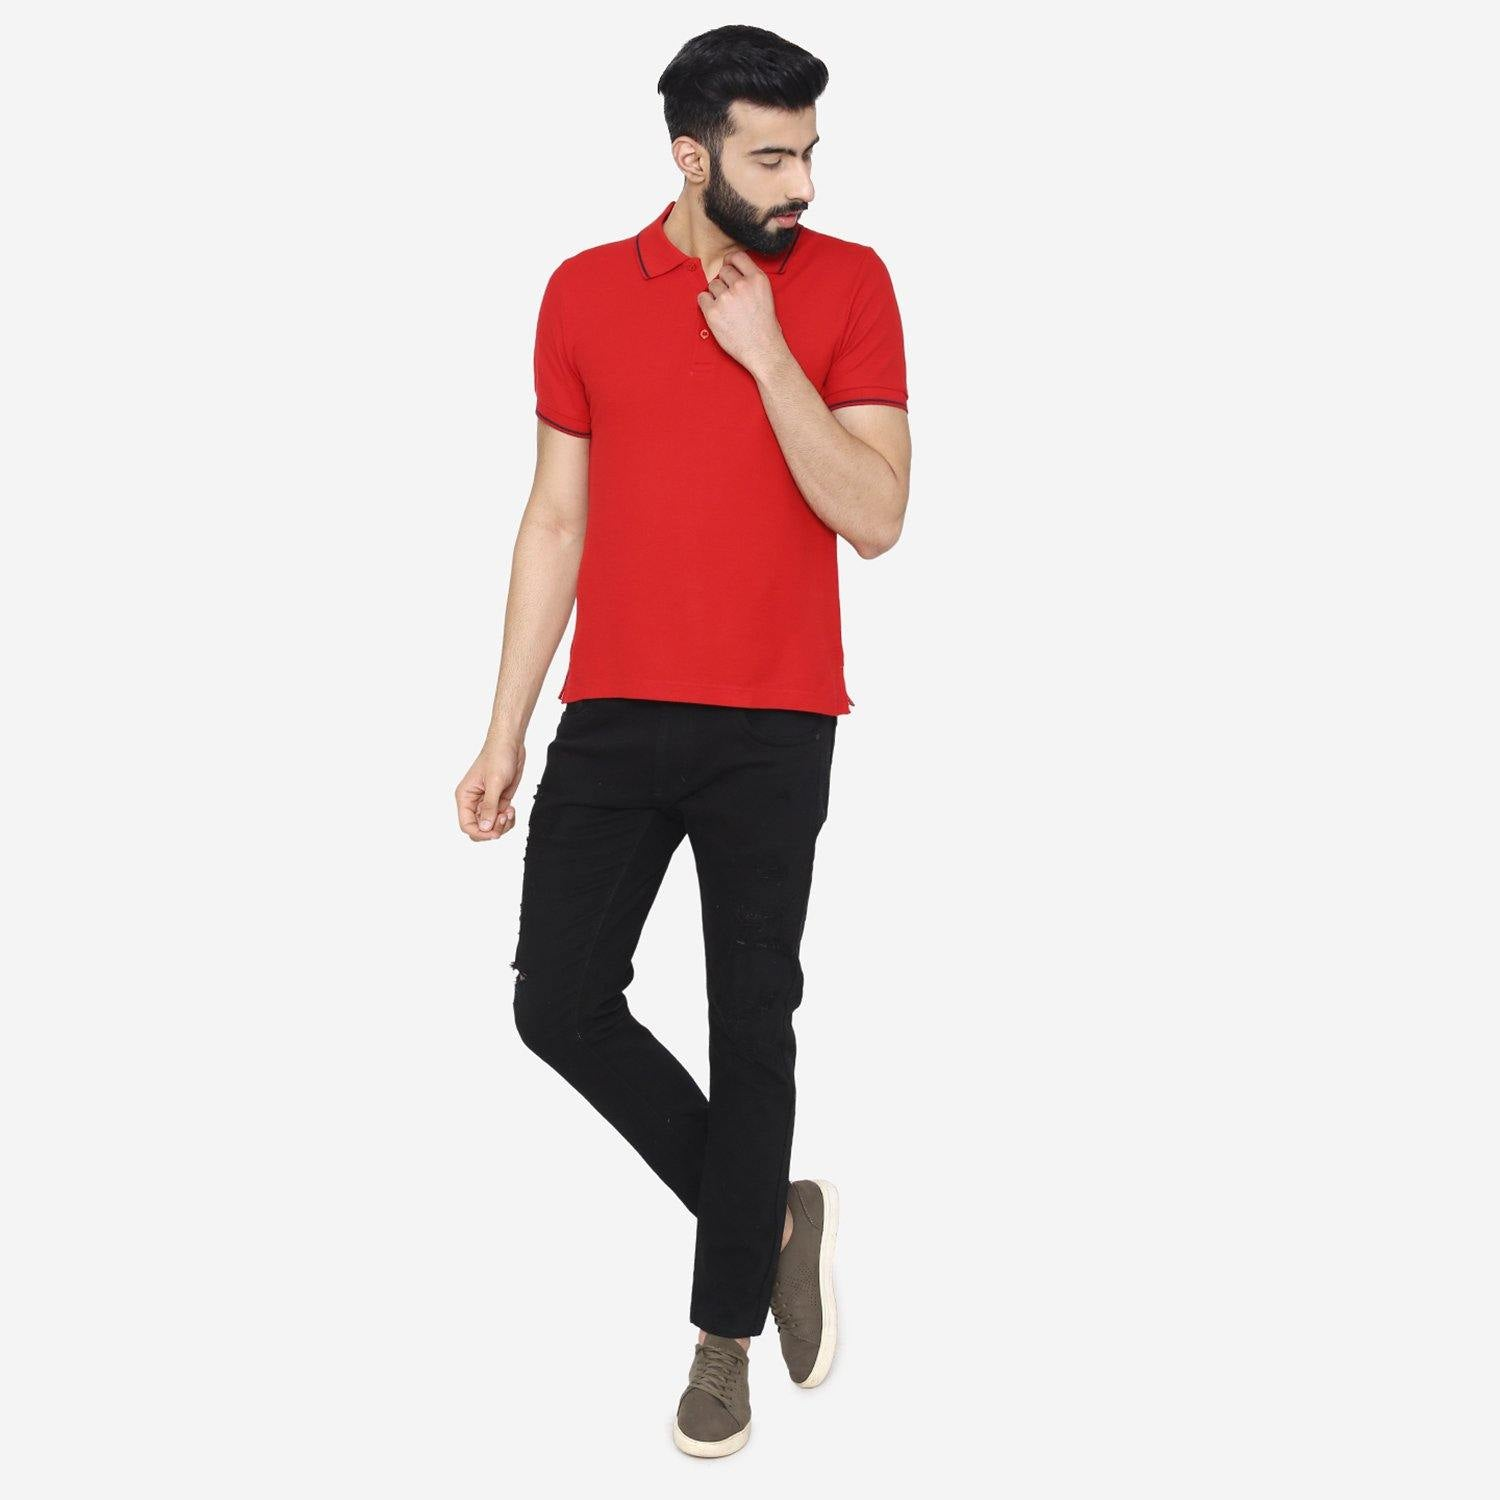 Men's  Polo - Neck Half Sleeve Casual T-Shirt - Red